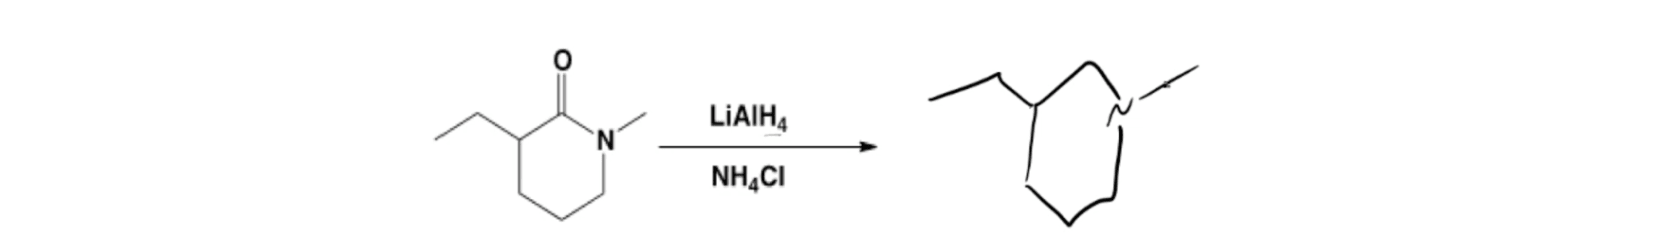 Amines from Amides with LiAlH4